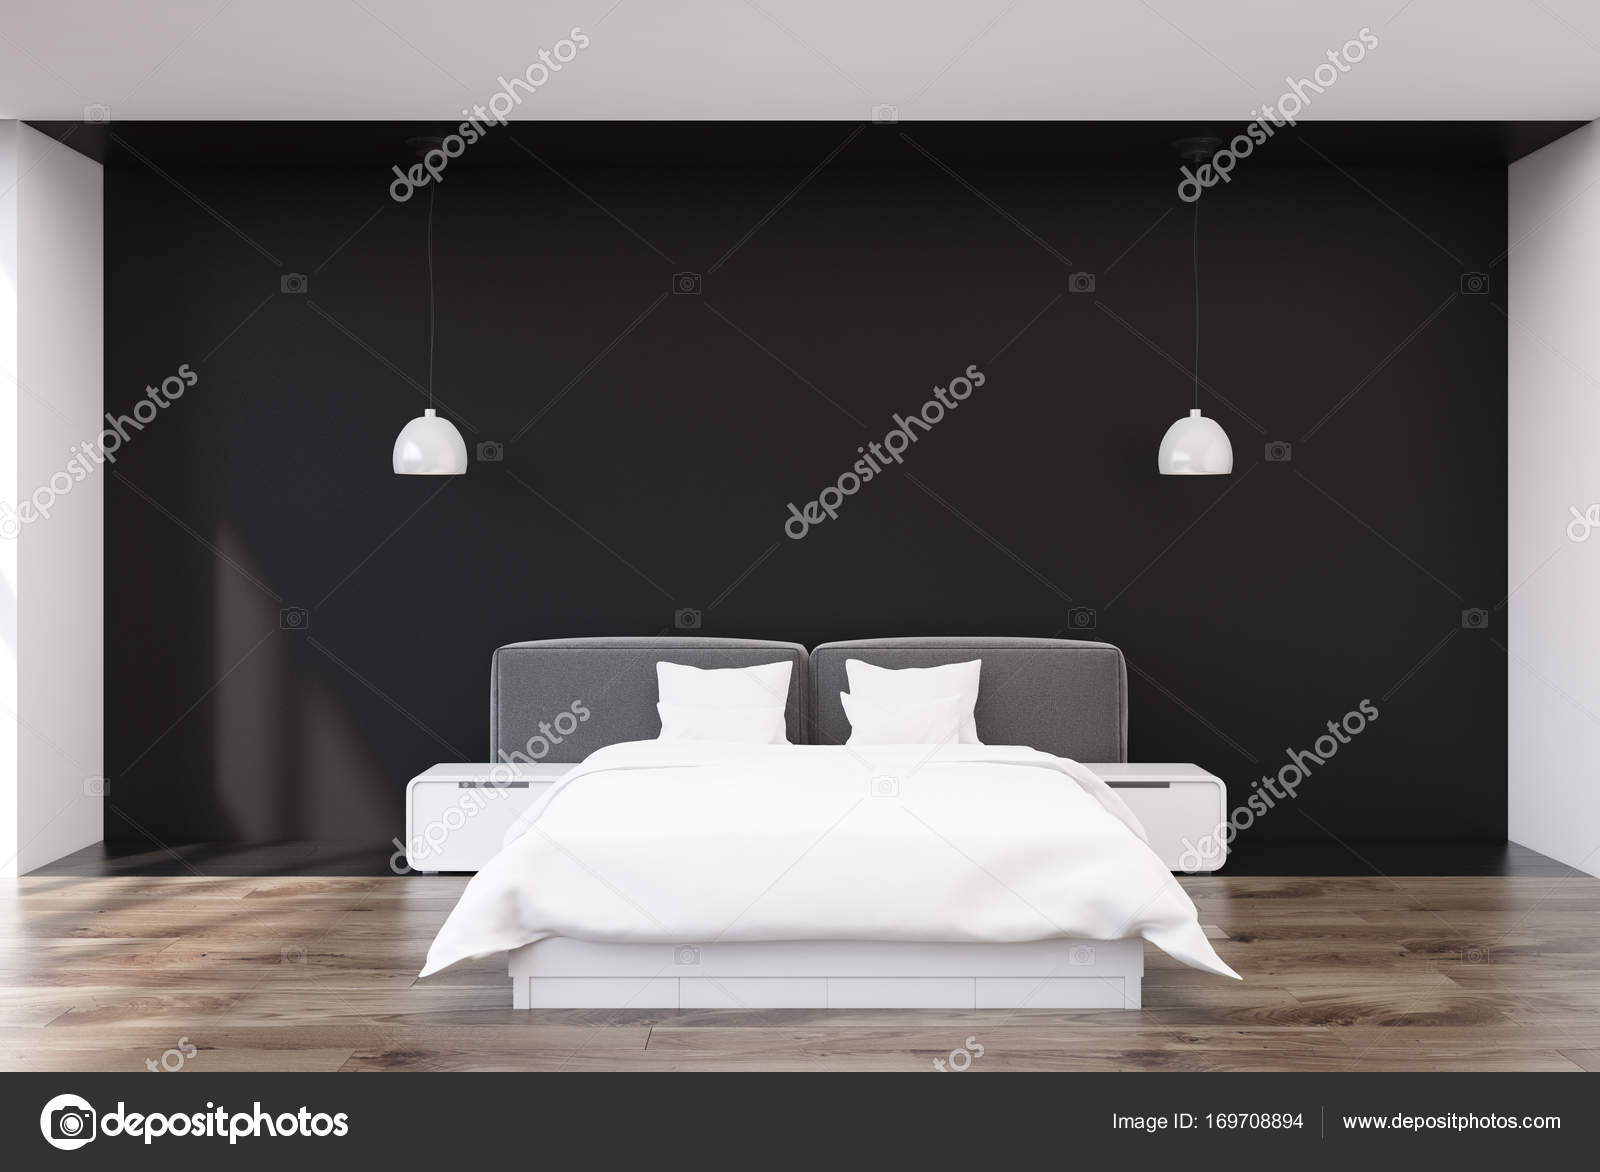 Interno camera da letto nera — Foto Stock © denisismagilov #169708894